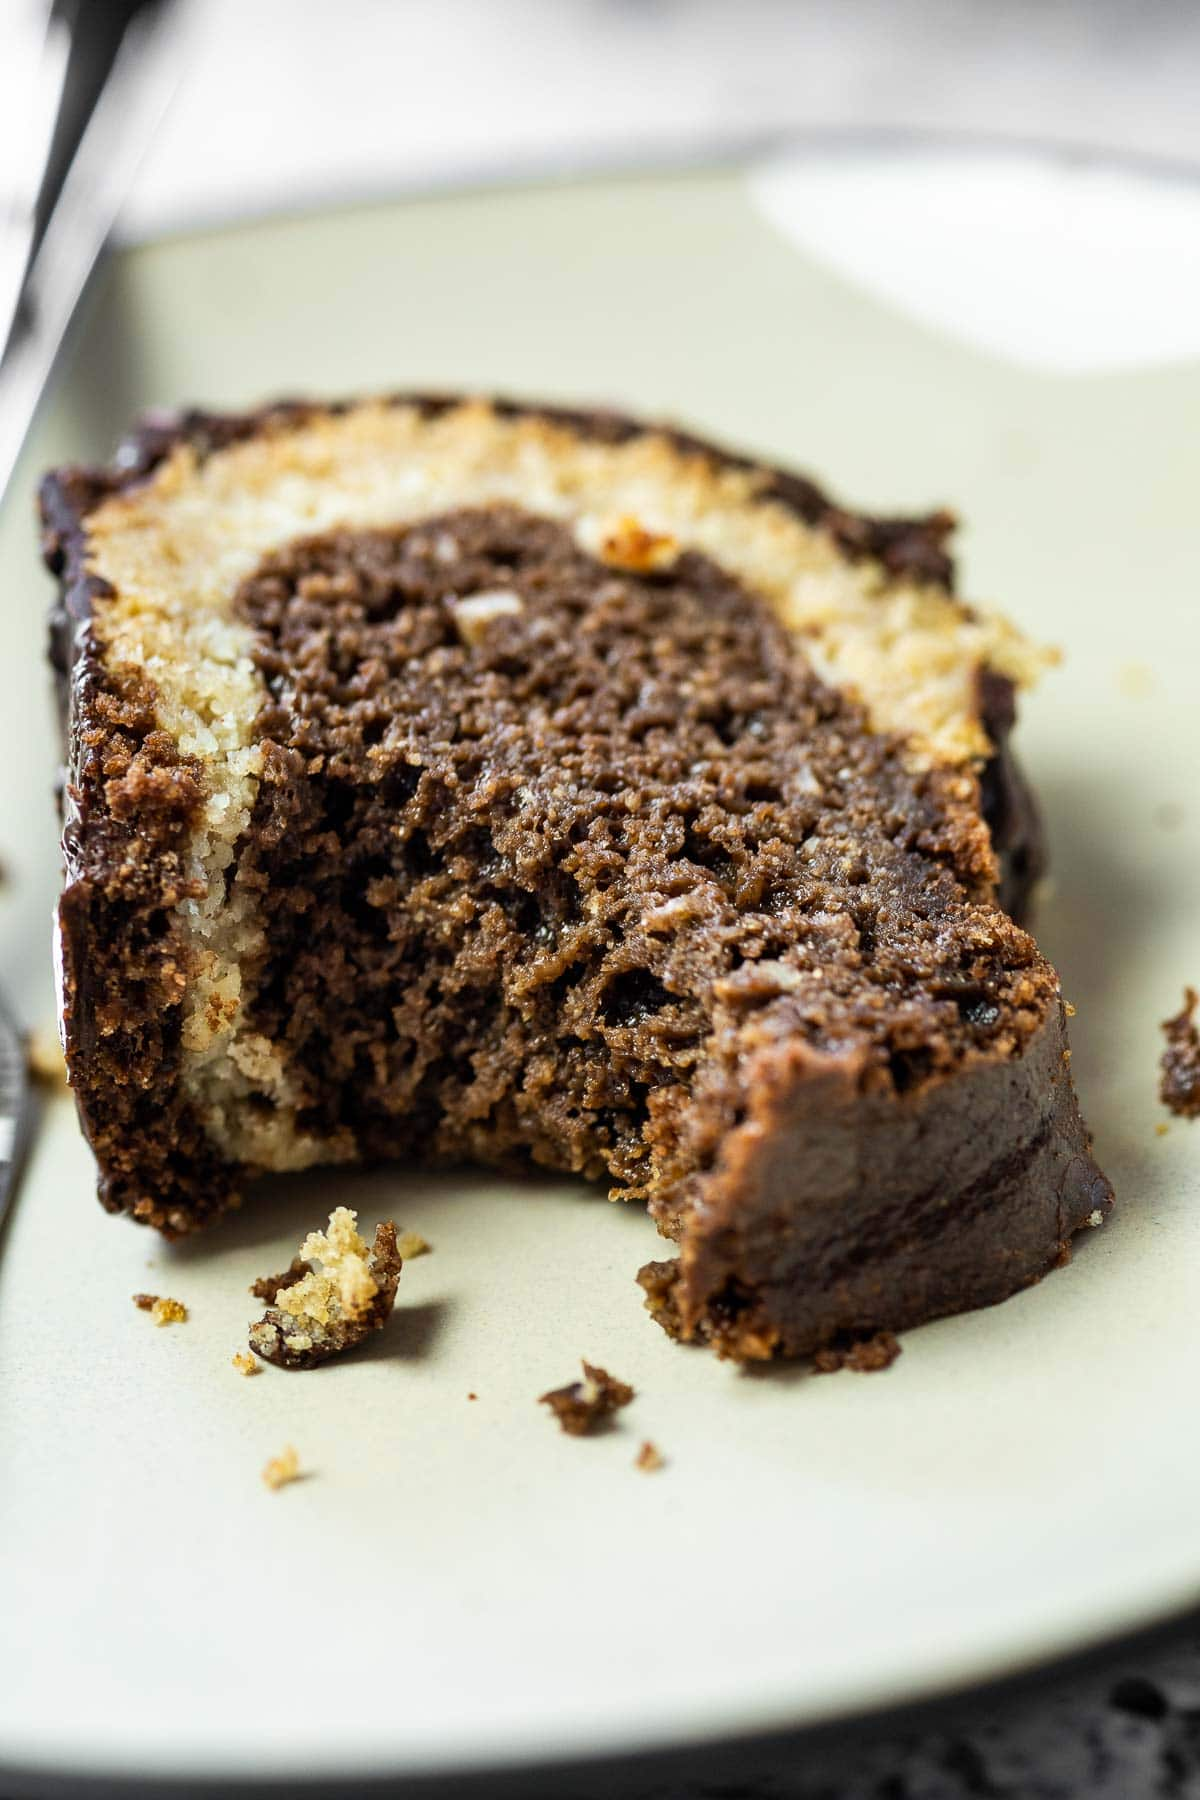 A piece of vegan marble cake on a plate with a bite missing